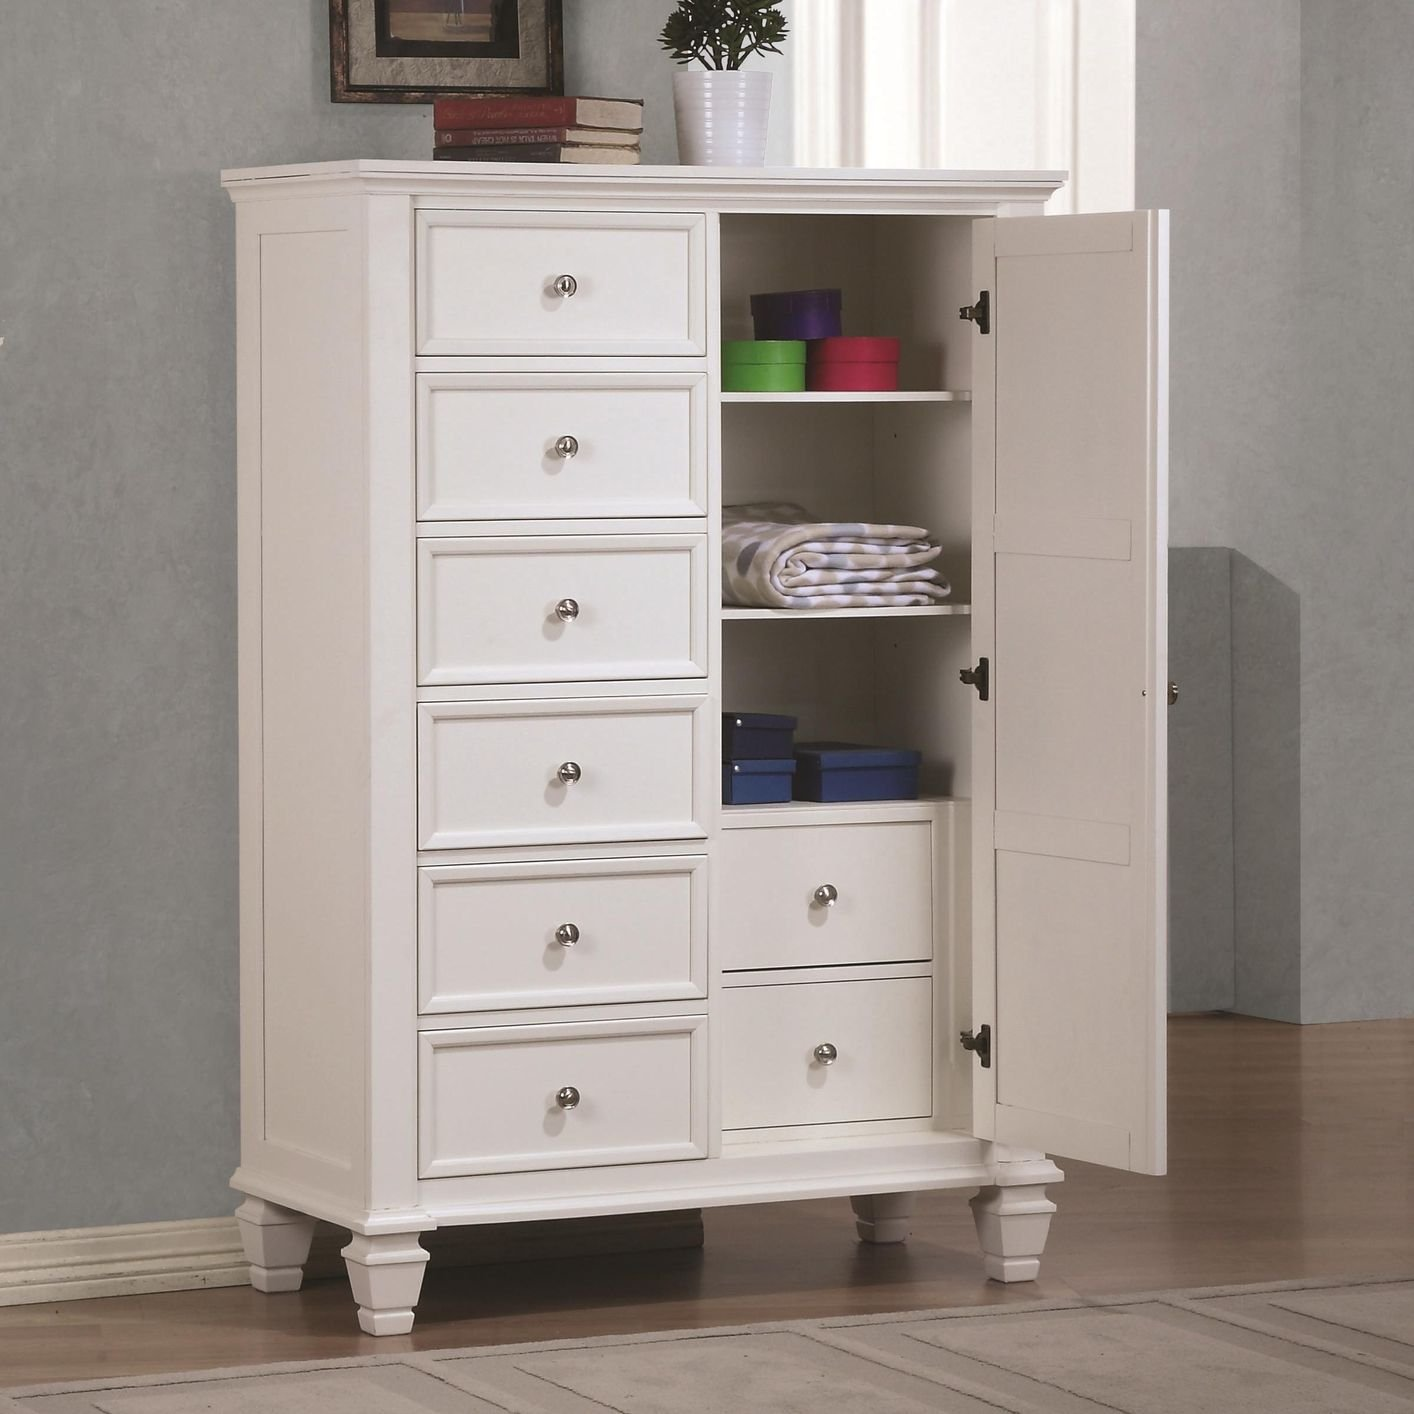 chest drawers white wood chest of drawers QATNEUC